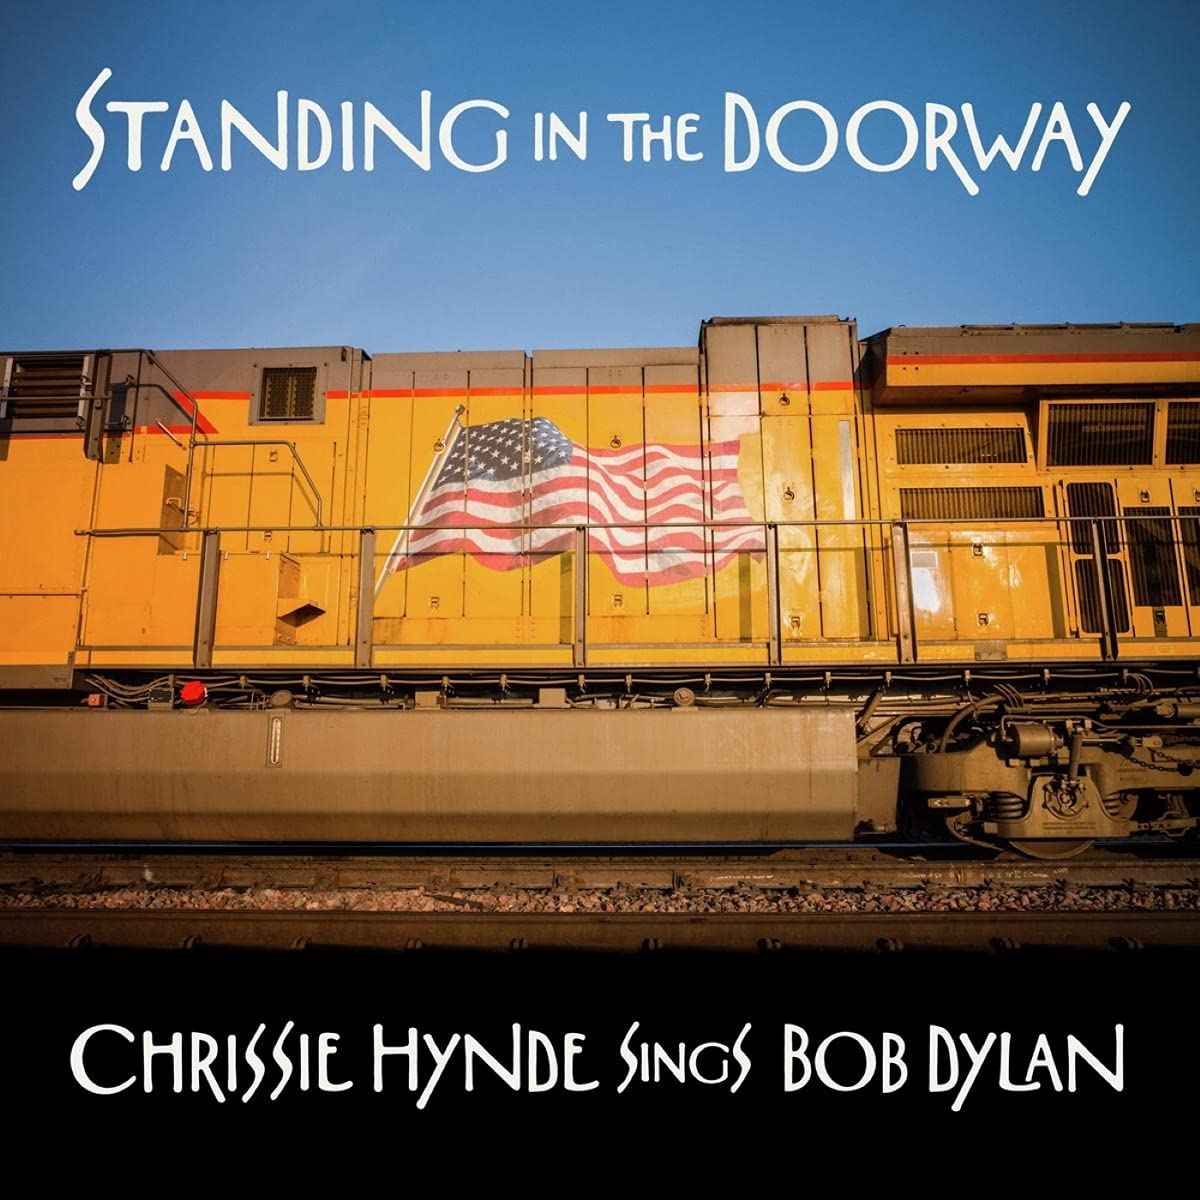 Standing in the Doorway: Chrissie Hynde Sings Bob Dylan [LP]